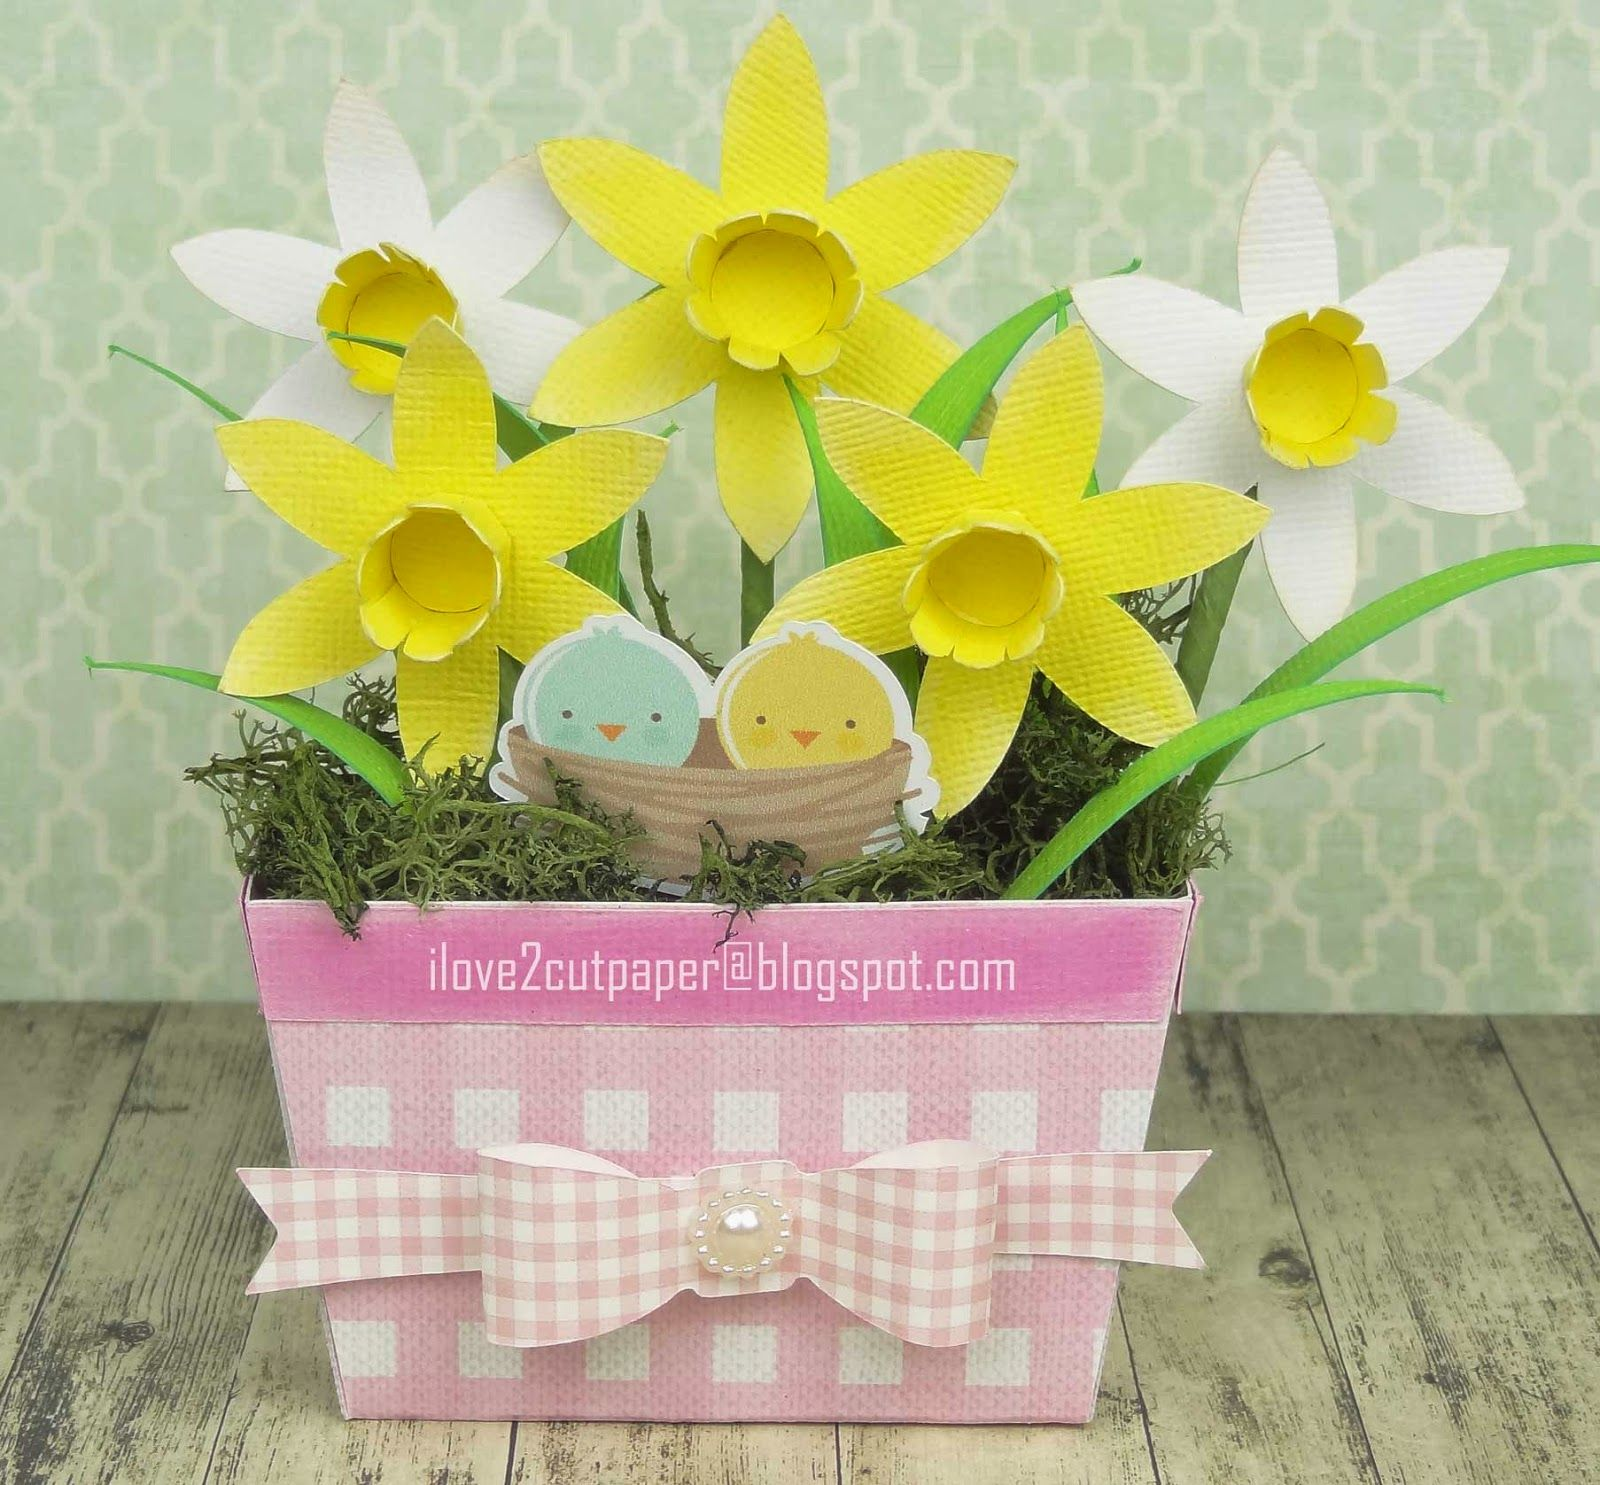 Daffodil Window Box with Print and Cut birds in nest! | easter ...